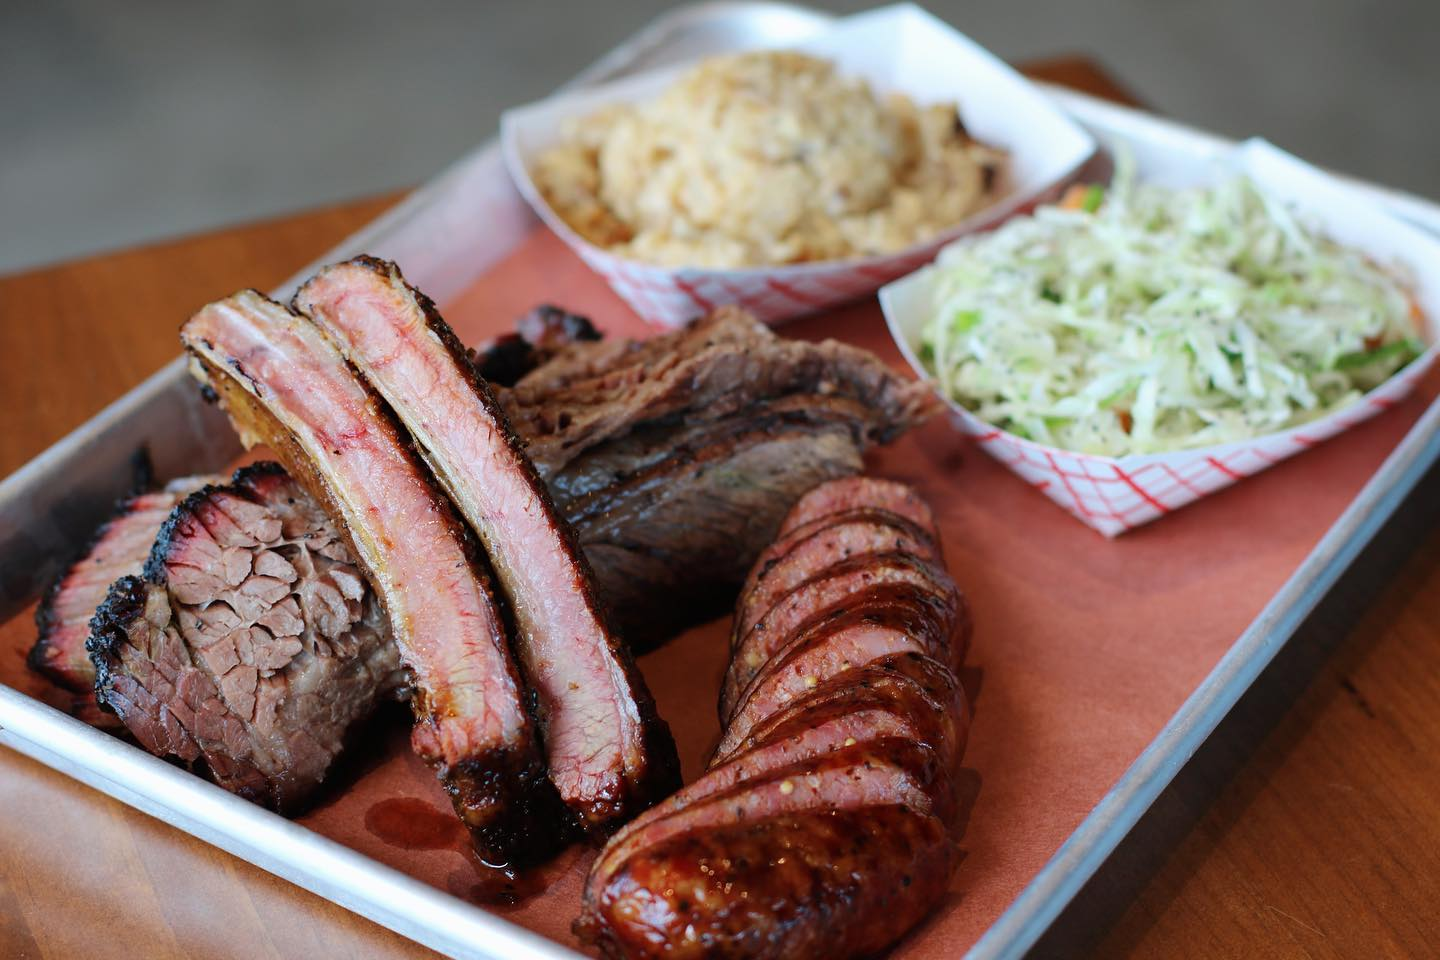 brisket, ribs and sausage on a platter with two sides